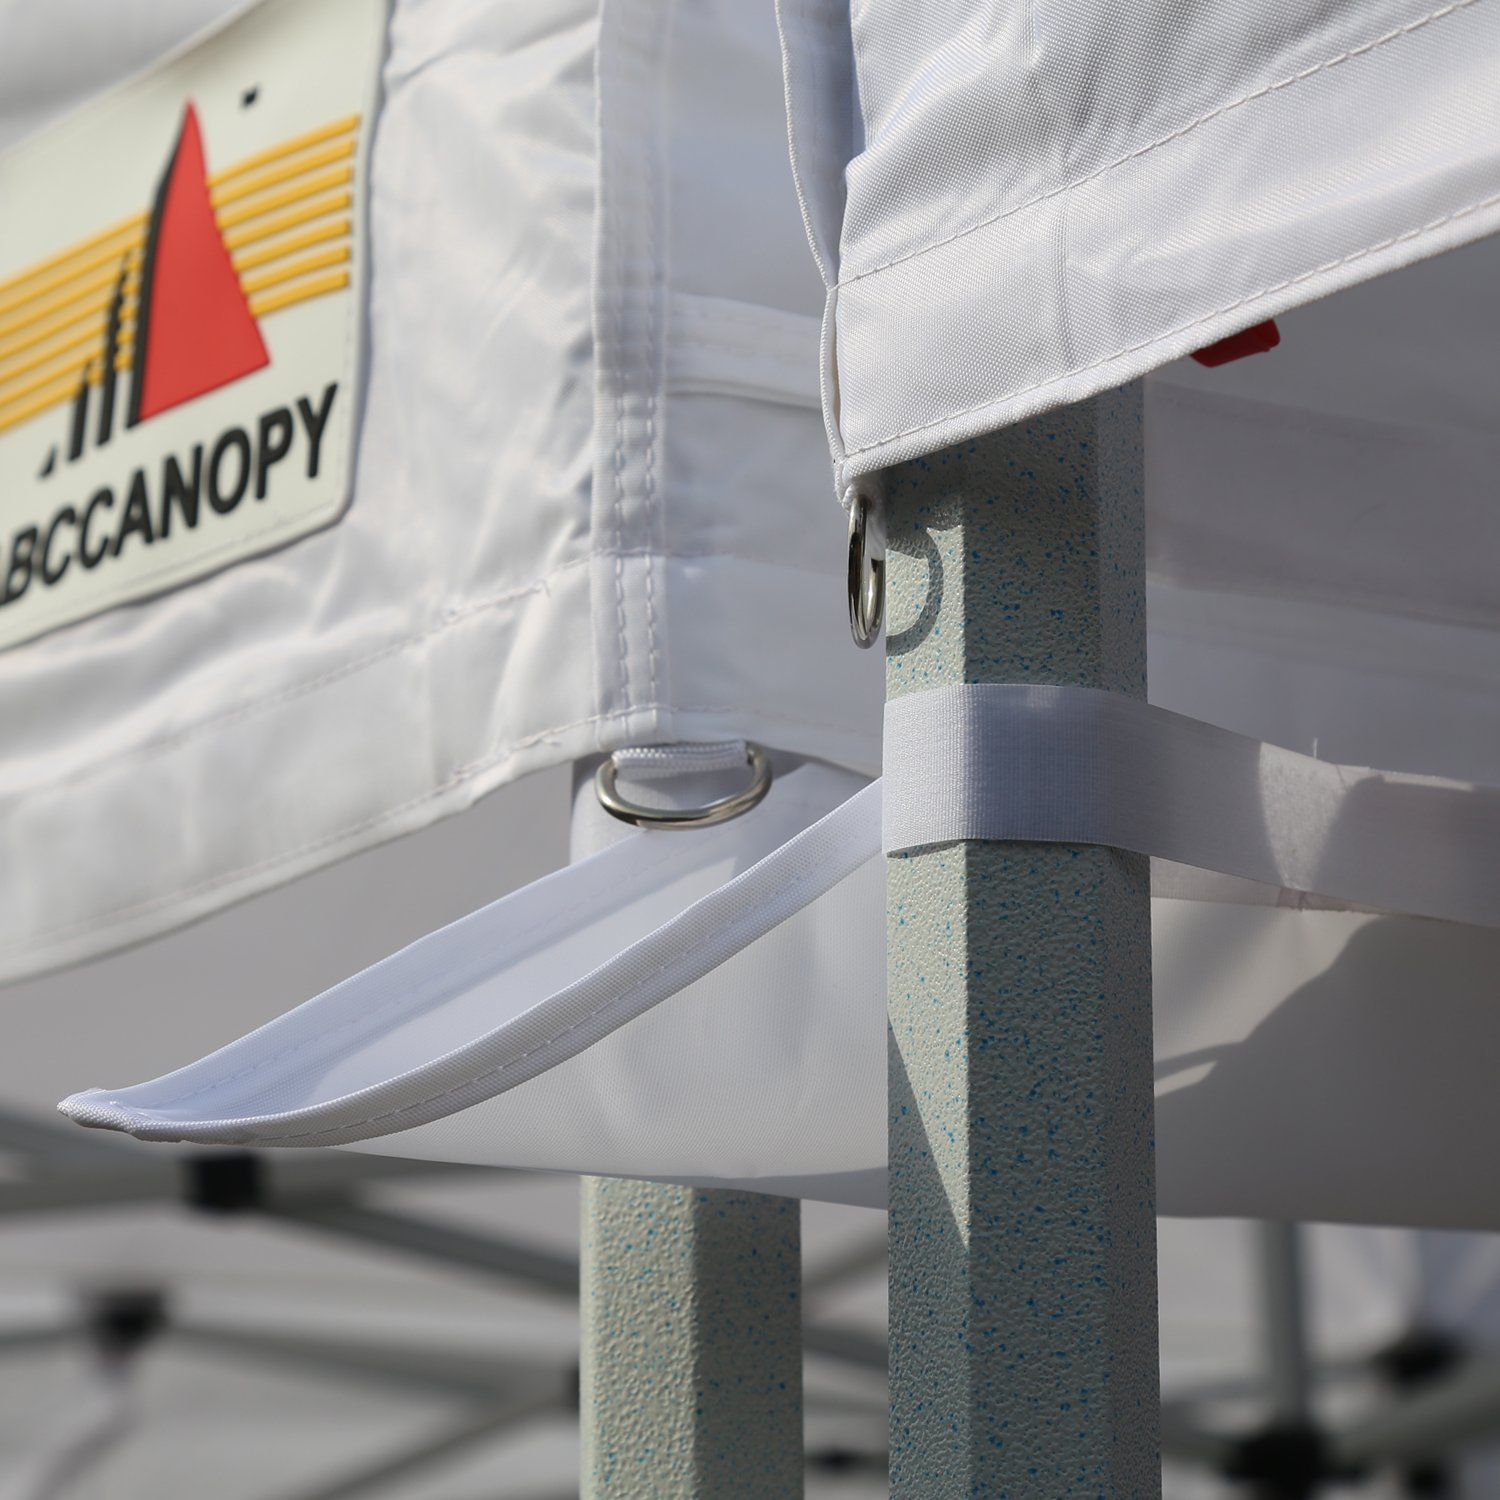 ABCCANOPY Canopy Accessories 10 Foot Canopy Rain Gutter/Light Gutter for 10' X 10' Canopy Pop up Tent (White-2) by ABCCANOPY